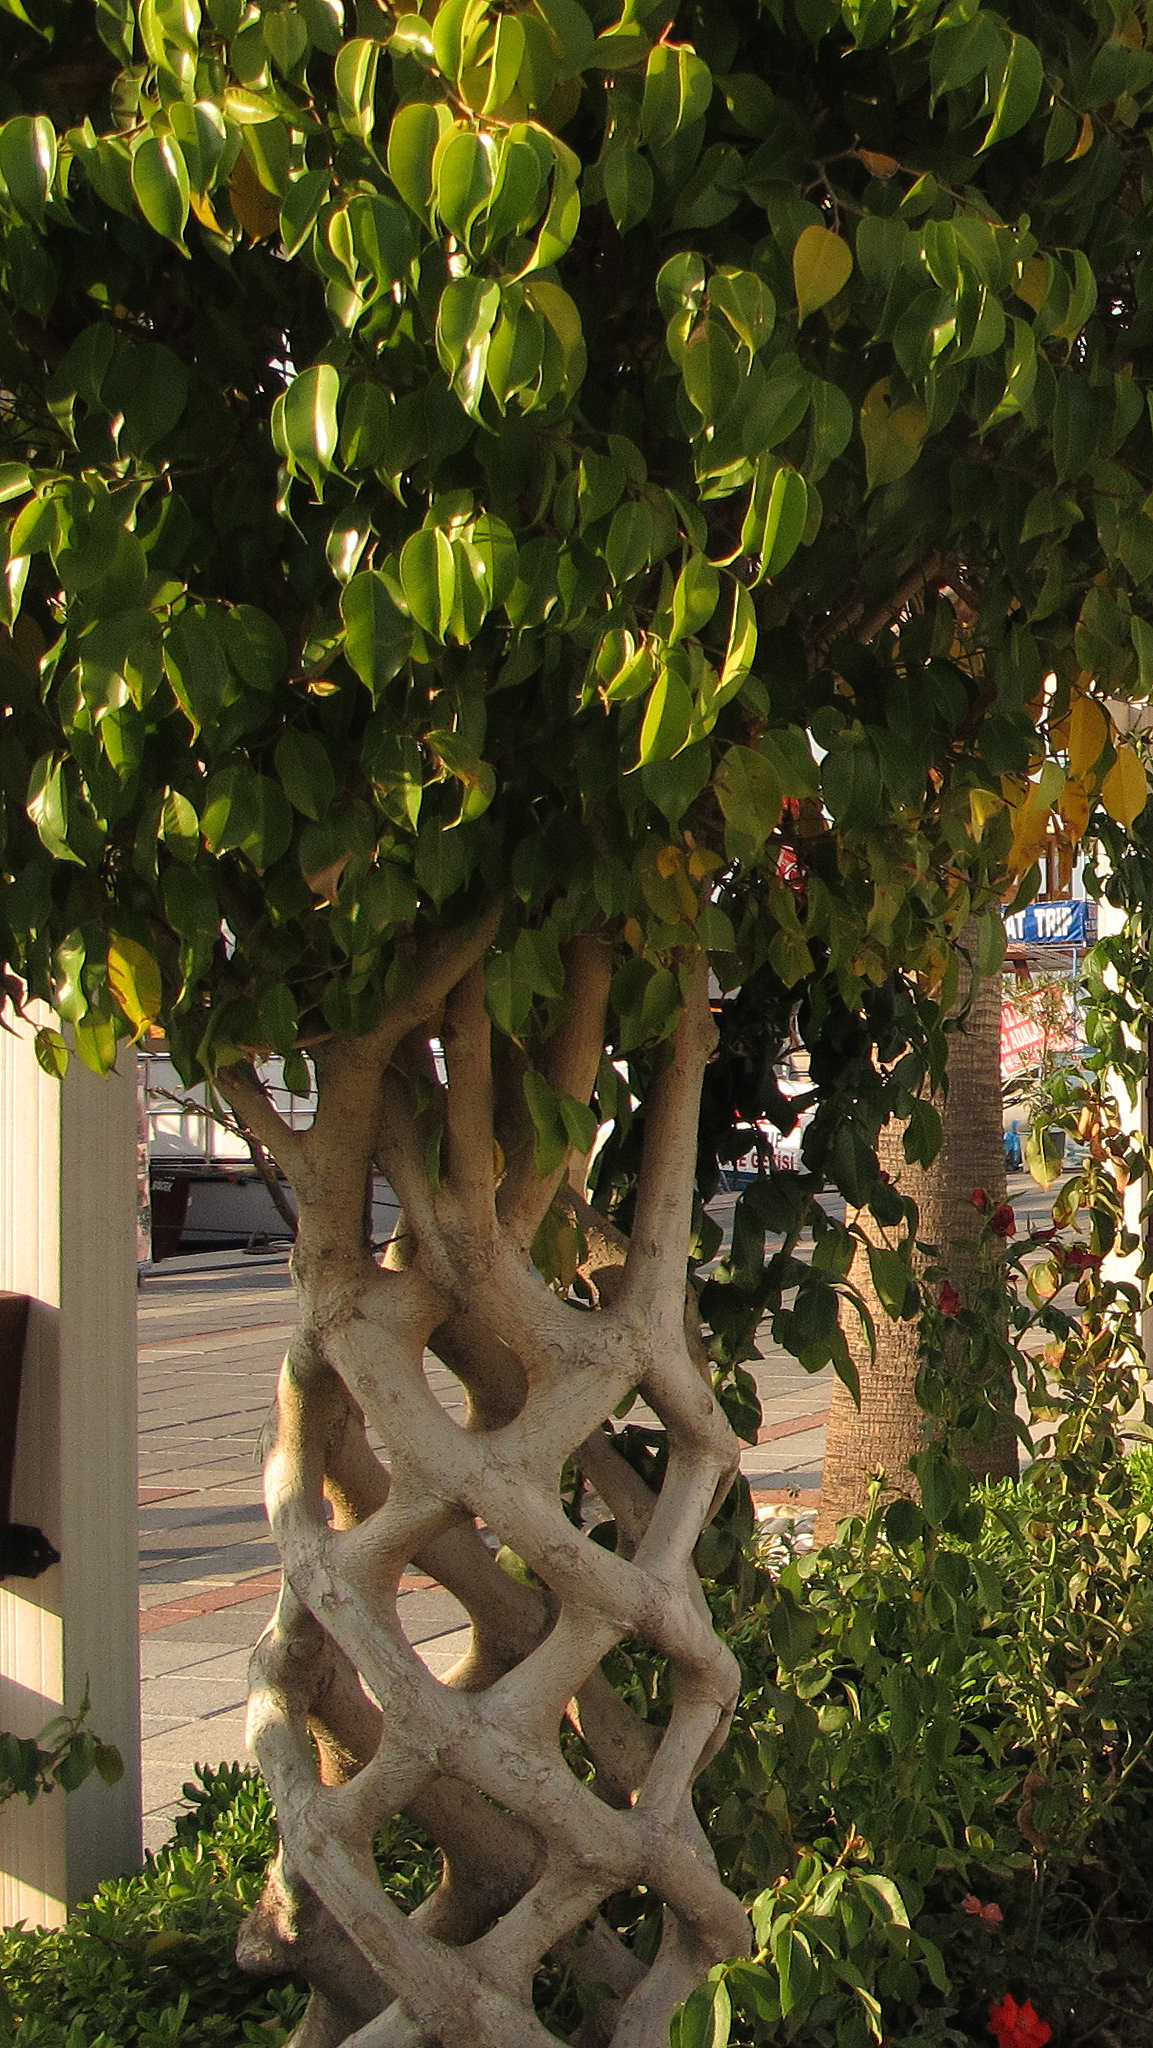 Day 2 - A cunningly grown tree with decorative trunk at the central square in Fethiye